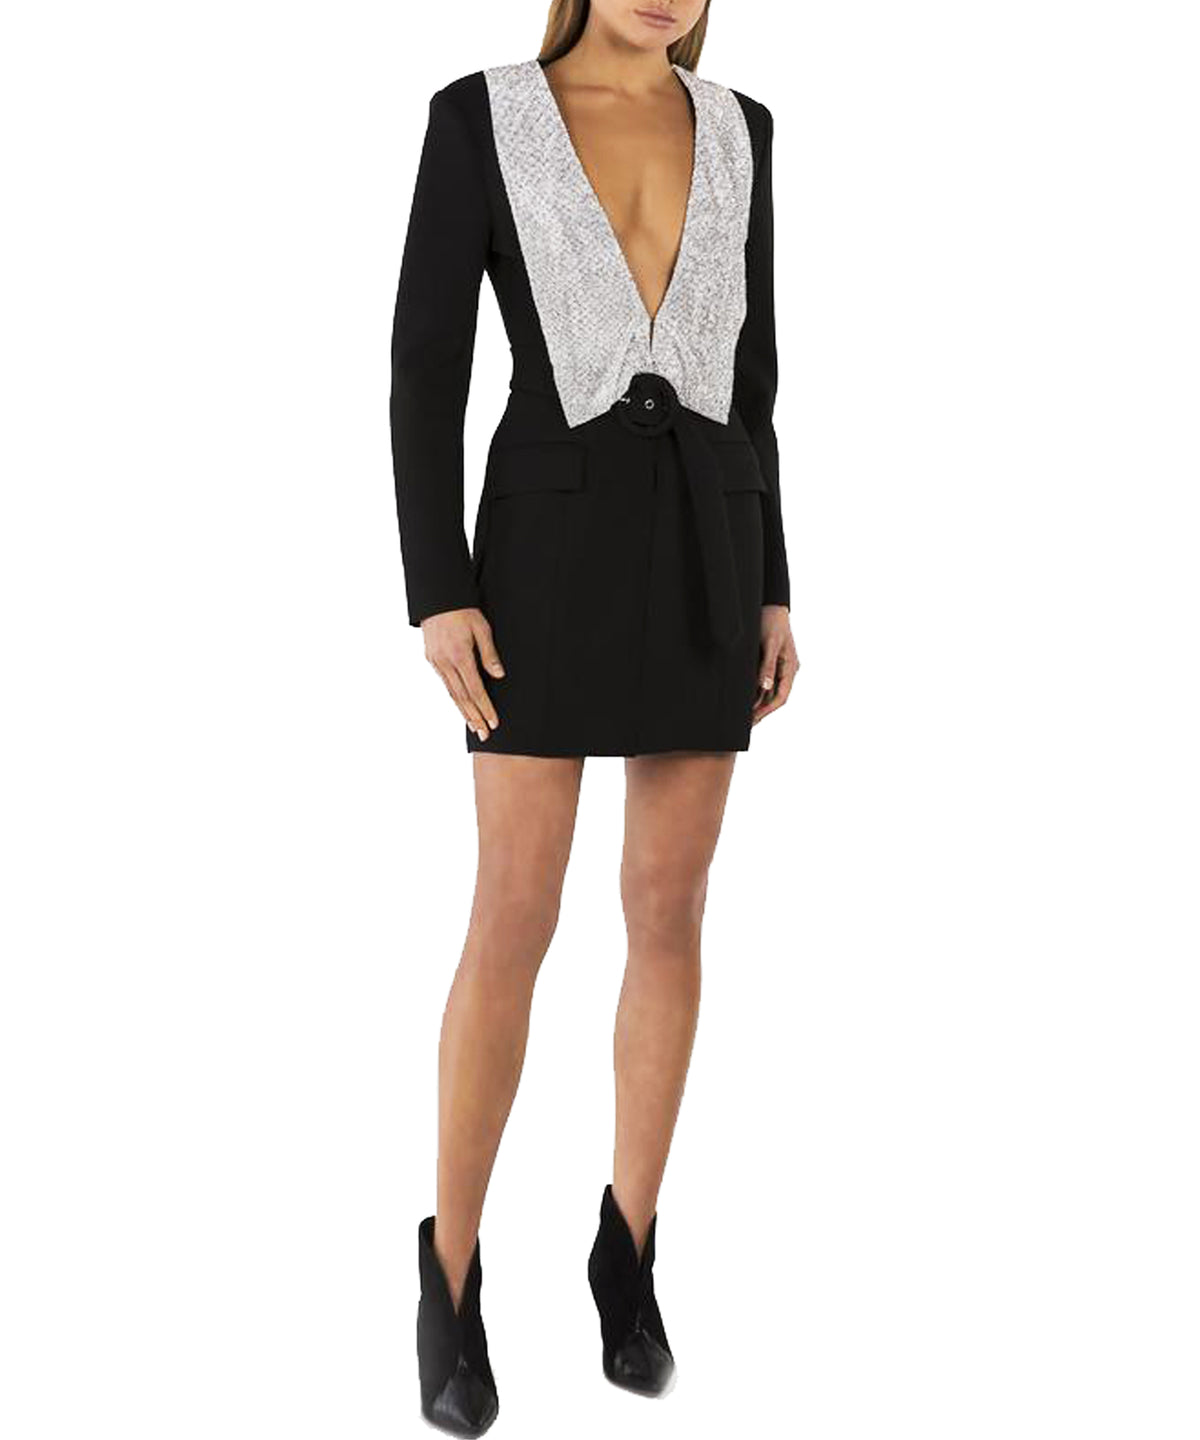 Misha Helen Blazer Dress with Crystal Lapel